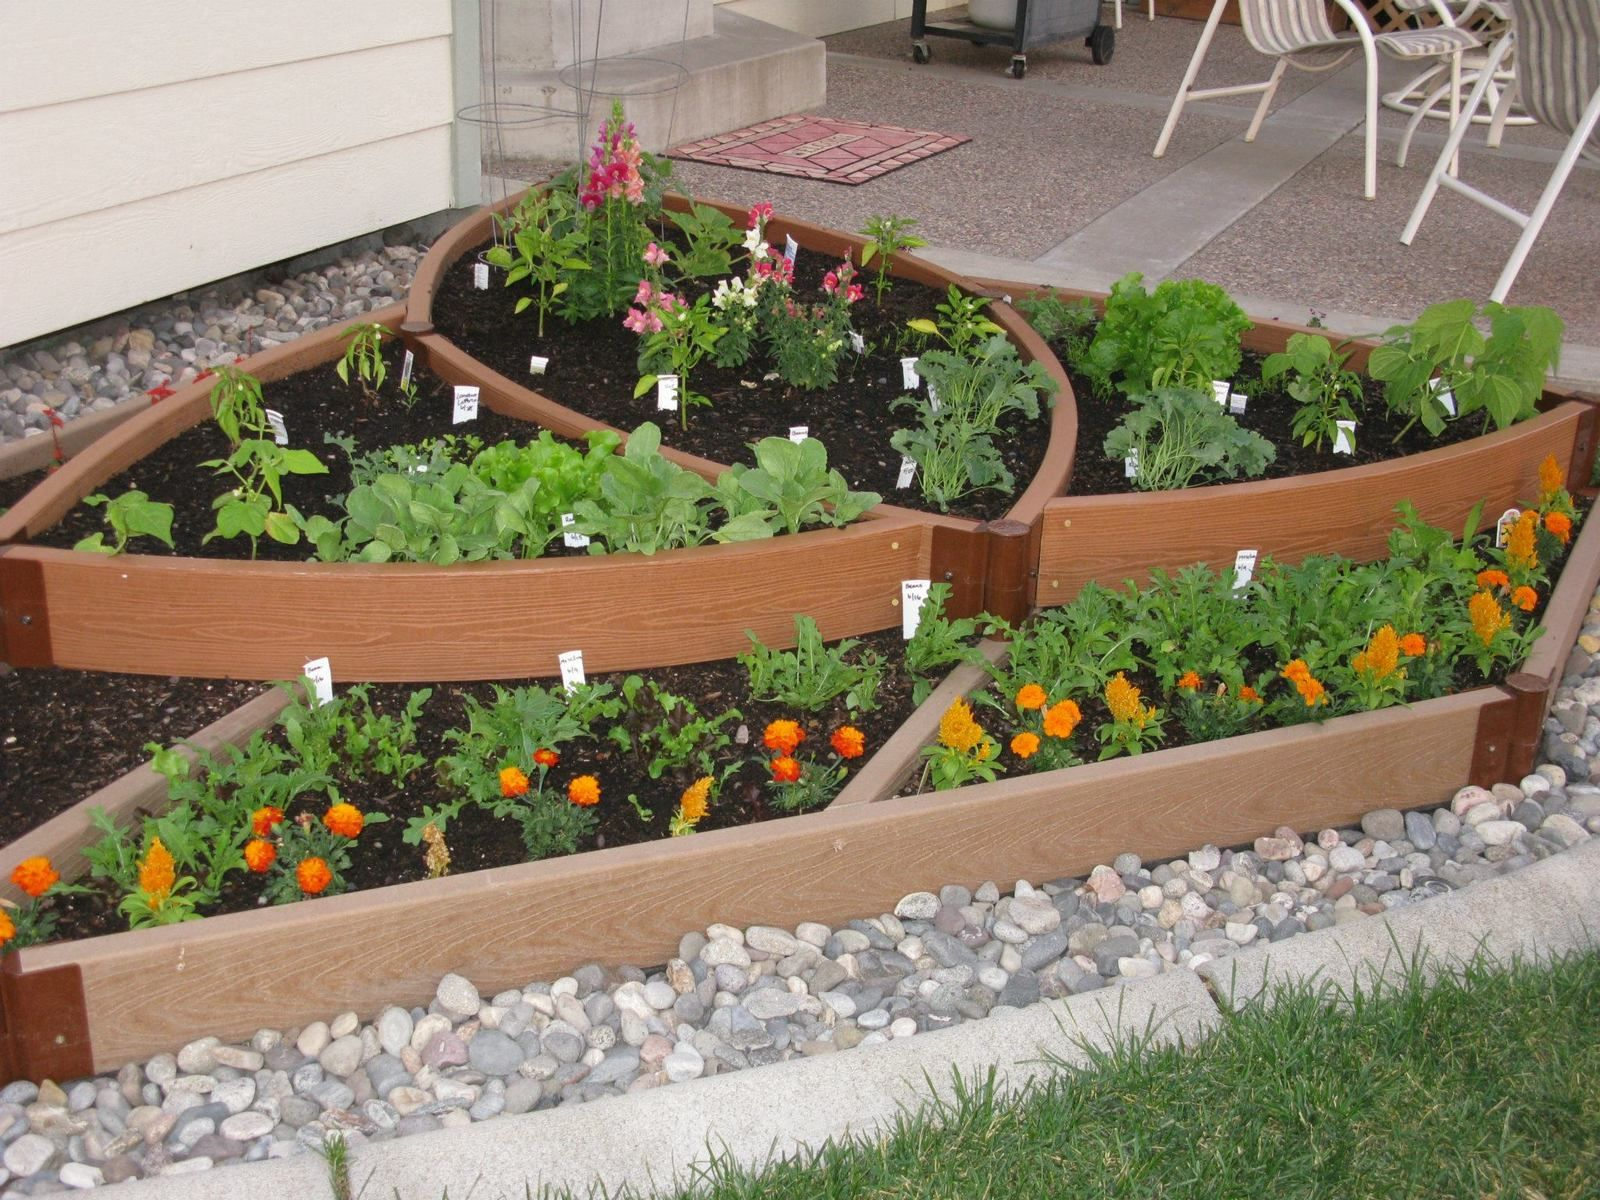 Garden Bed Designs elevate your denver garden with a raised bed lifescape Raised Garden Raised Garden Bed Kits For Sale And Buy Raised